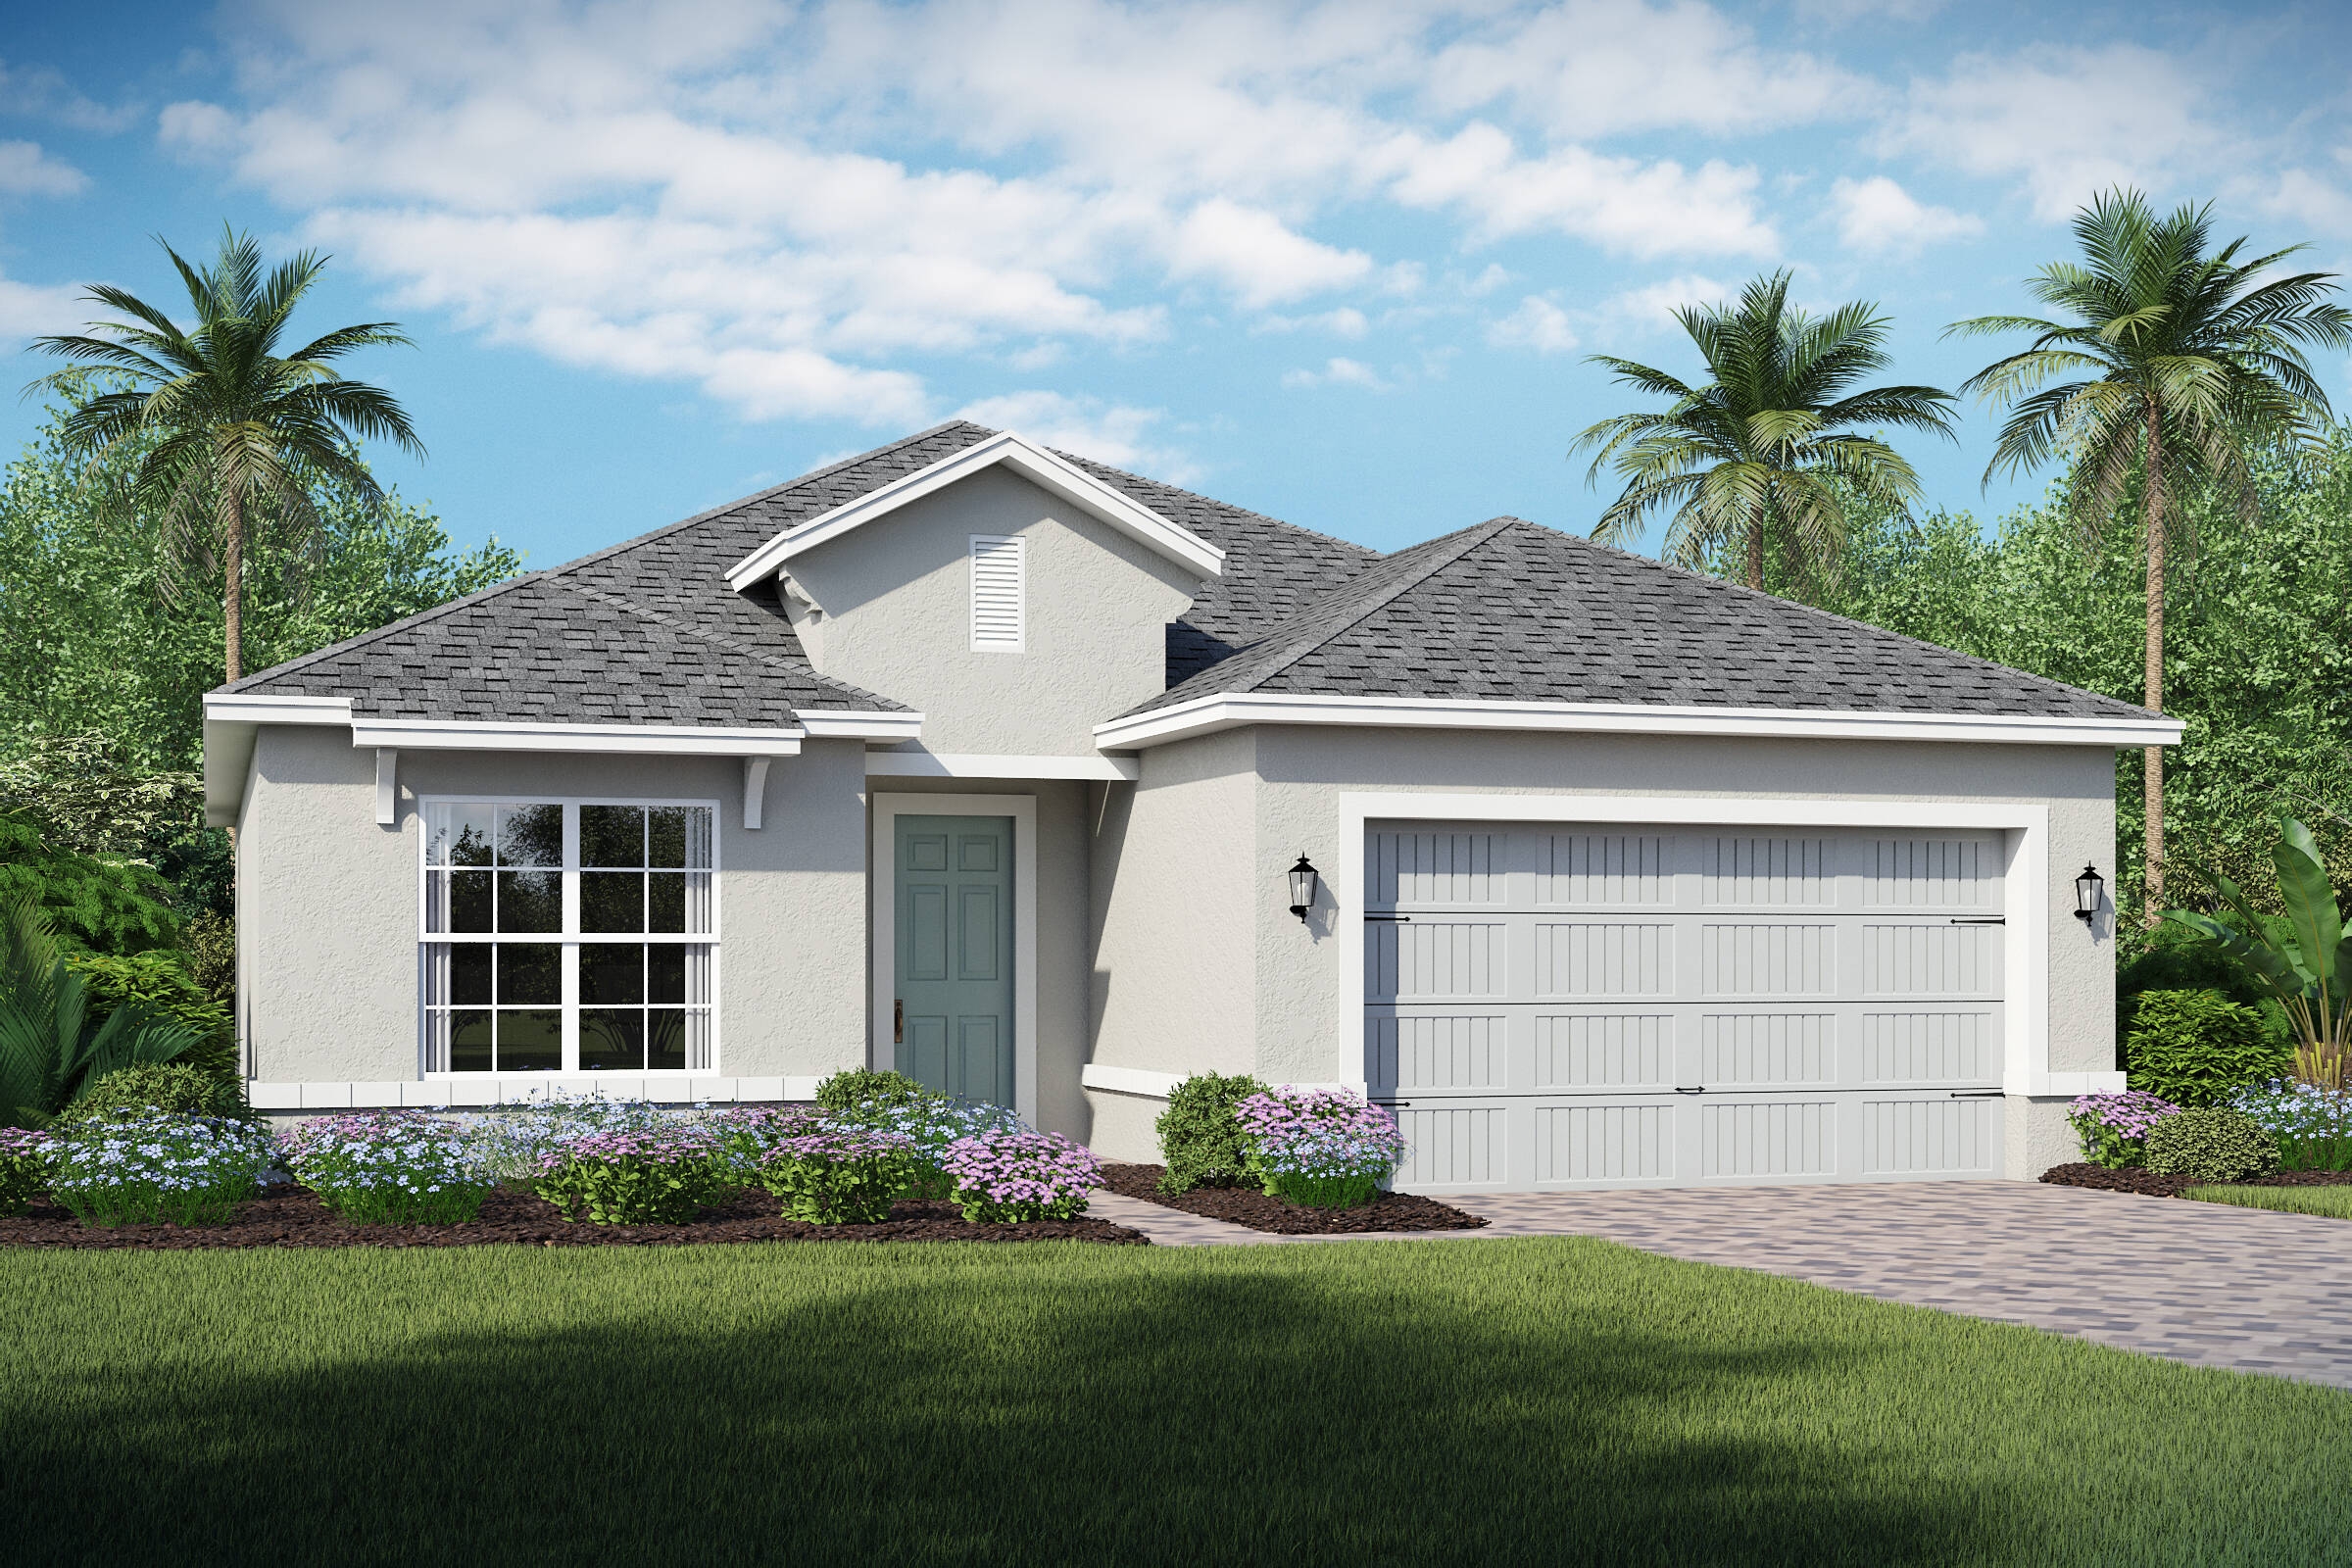 Saint Kitts-B-elev new homes in orlando